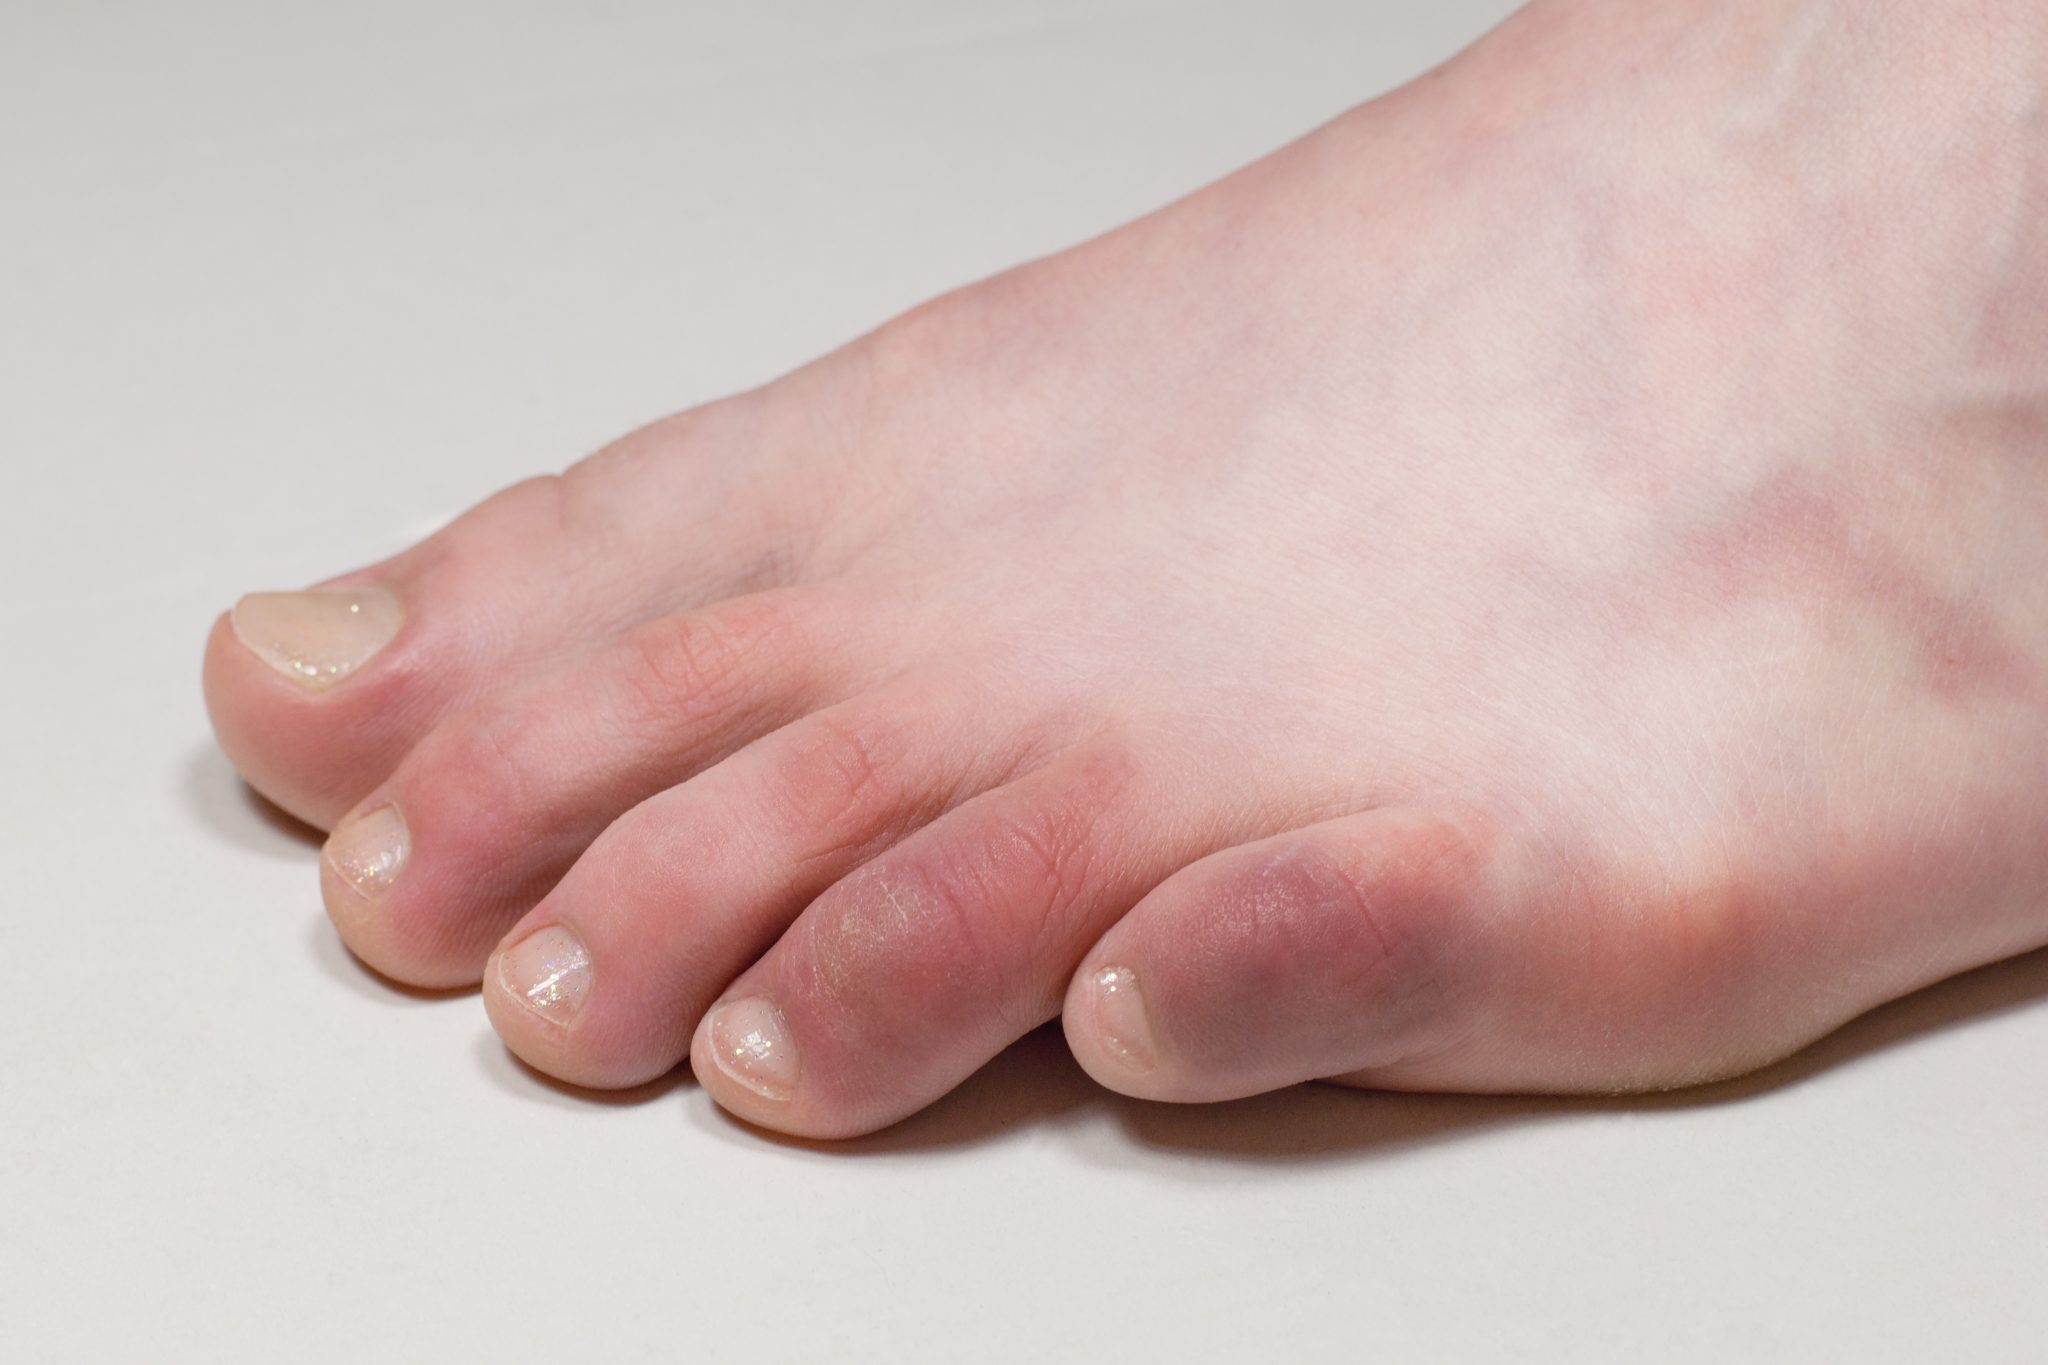 A foot with some redness and swelling on the toes.